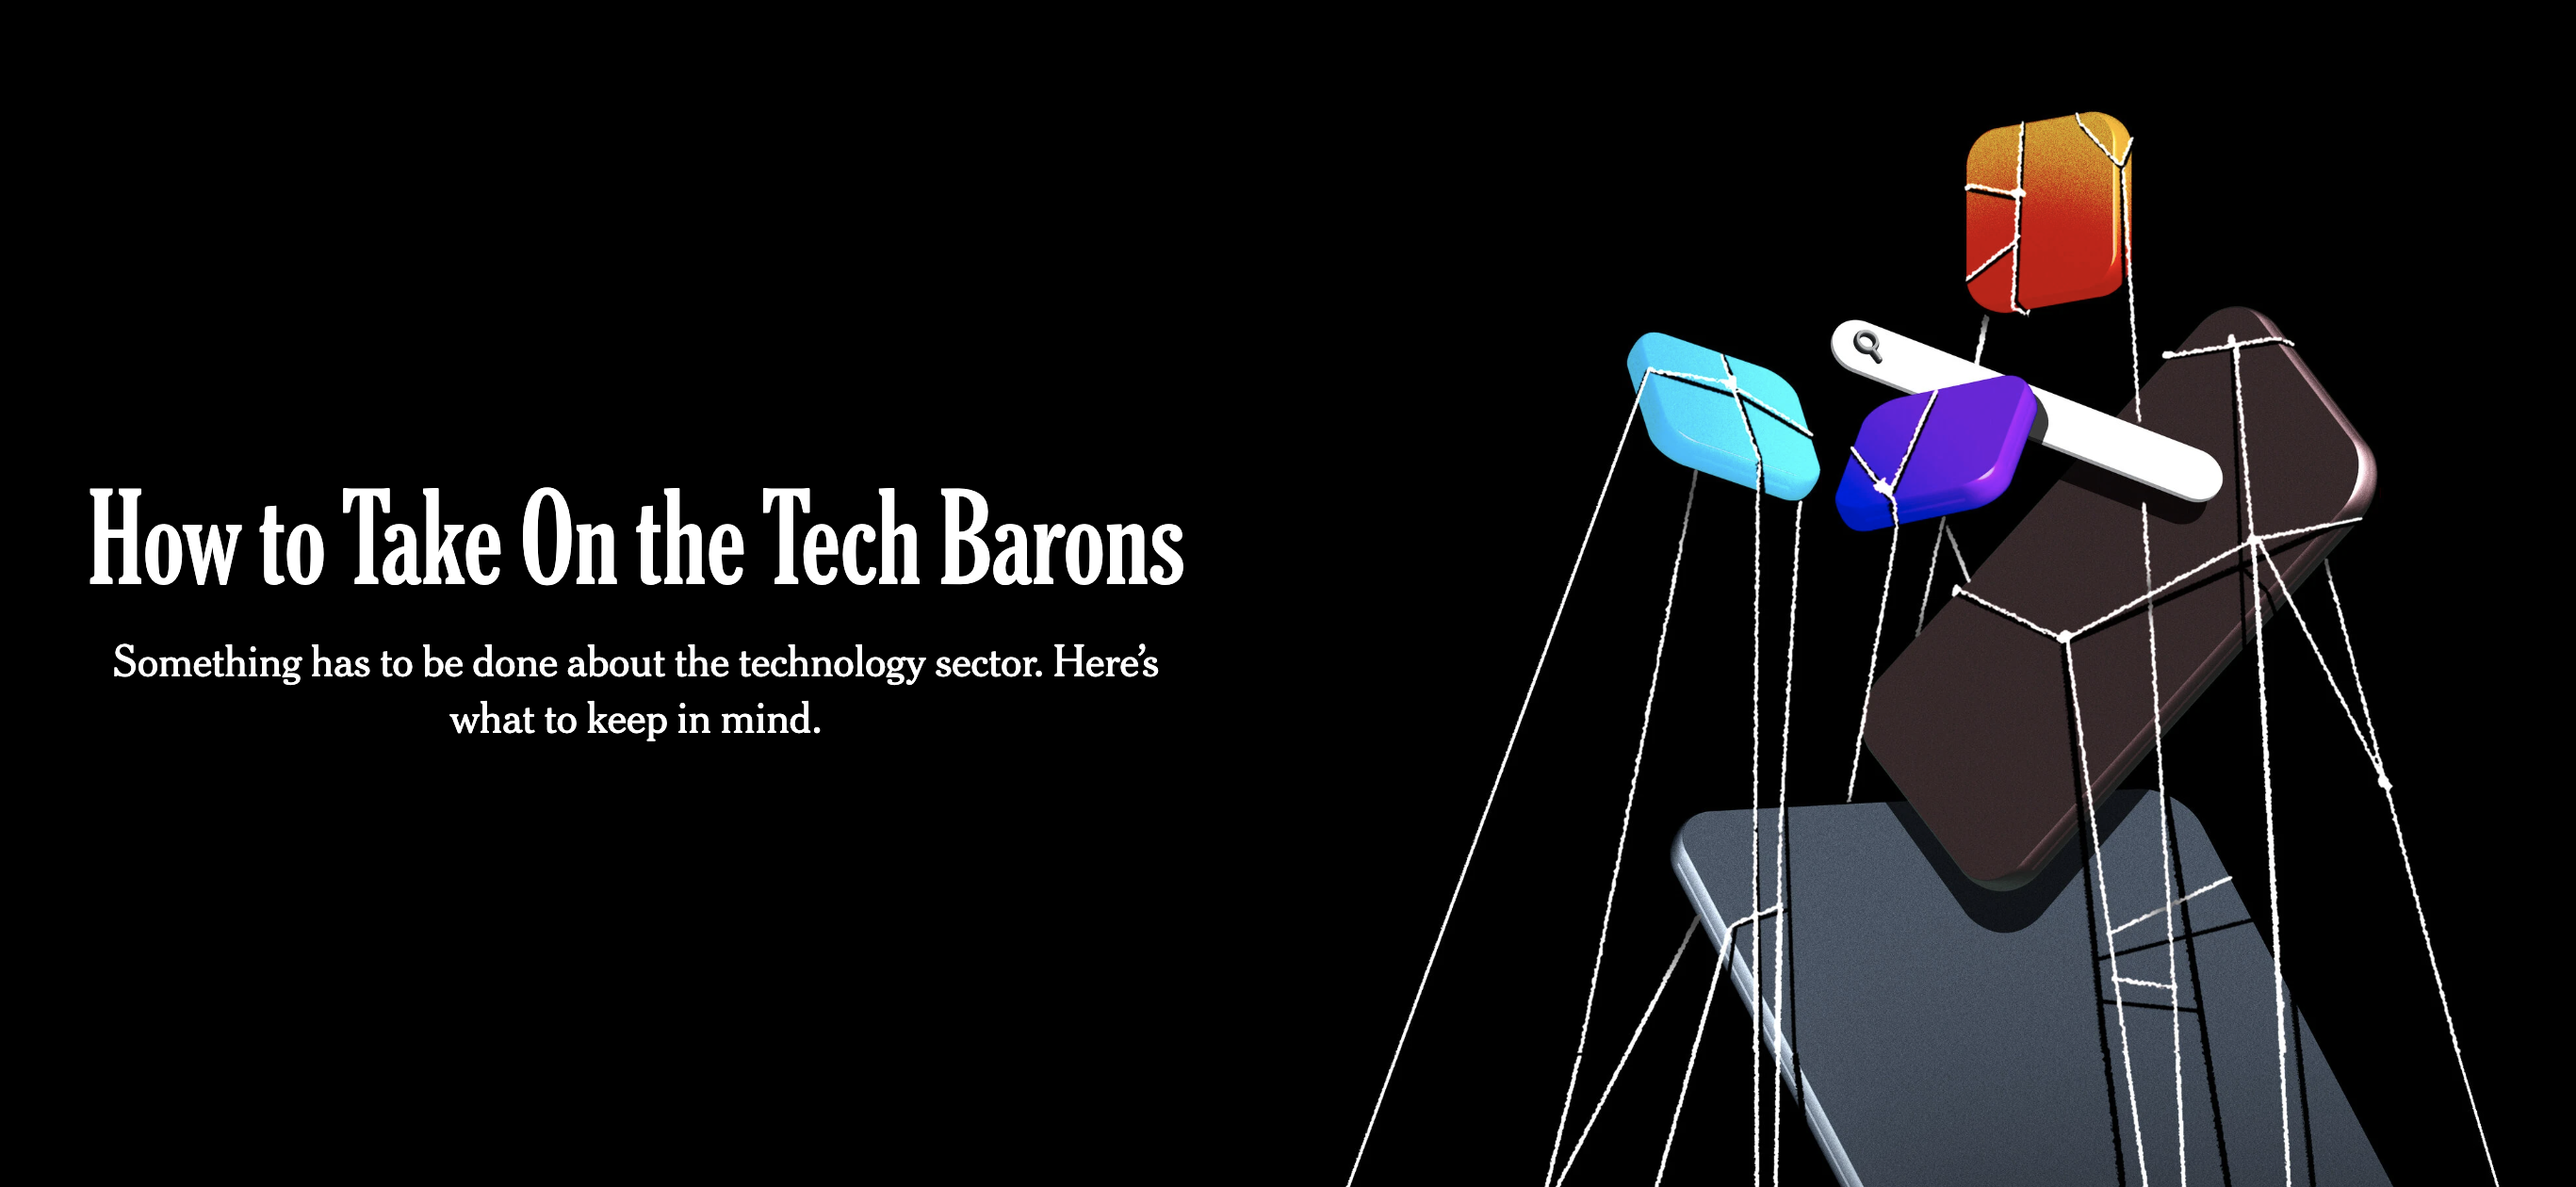 How to Take On the Tech Barons